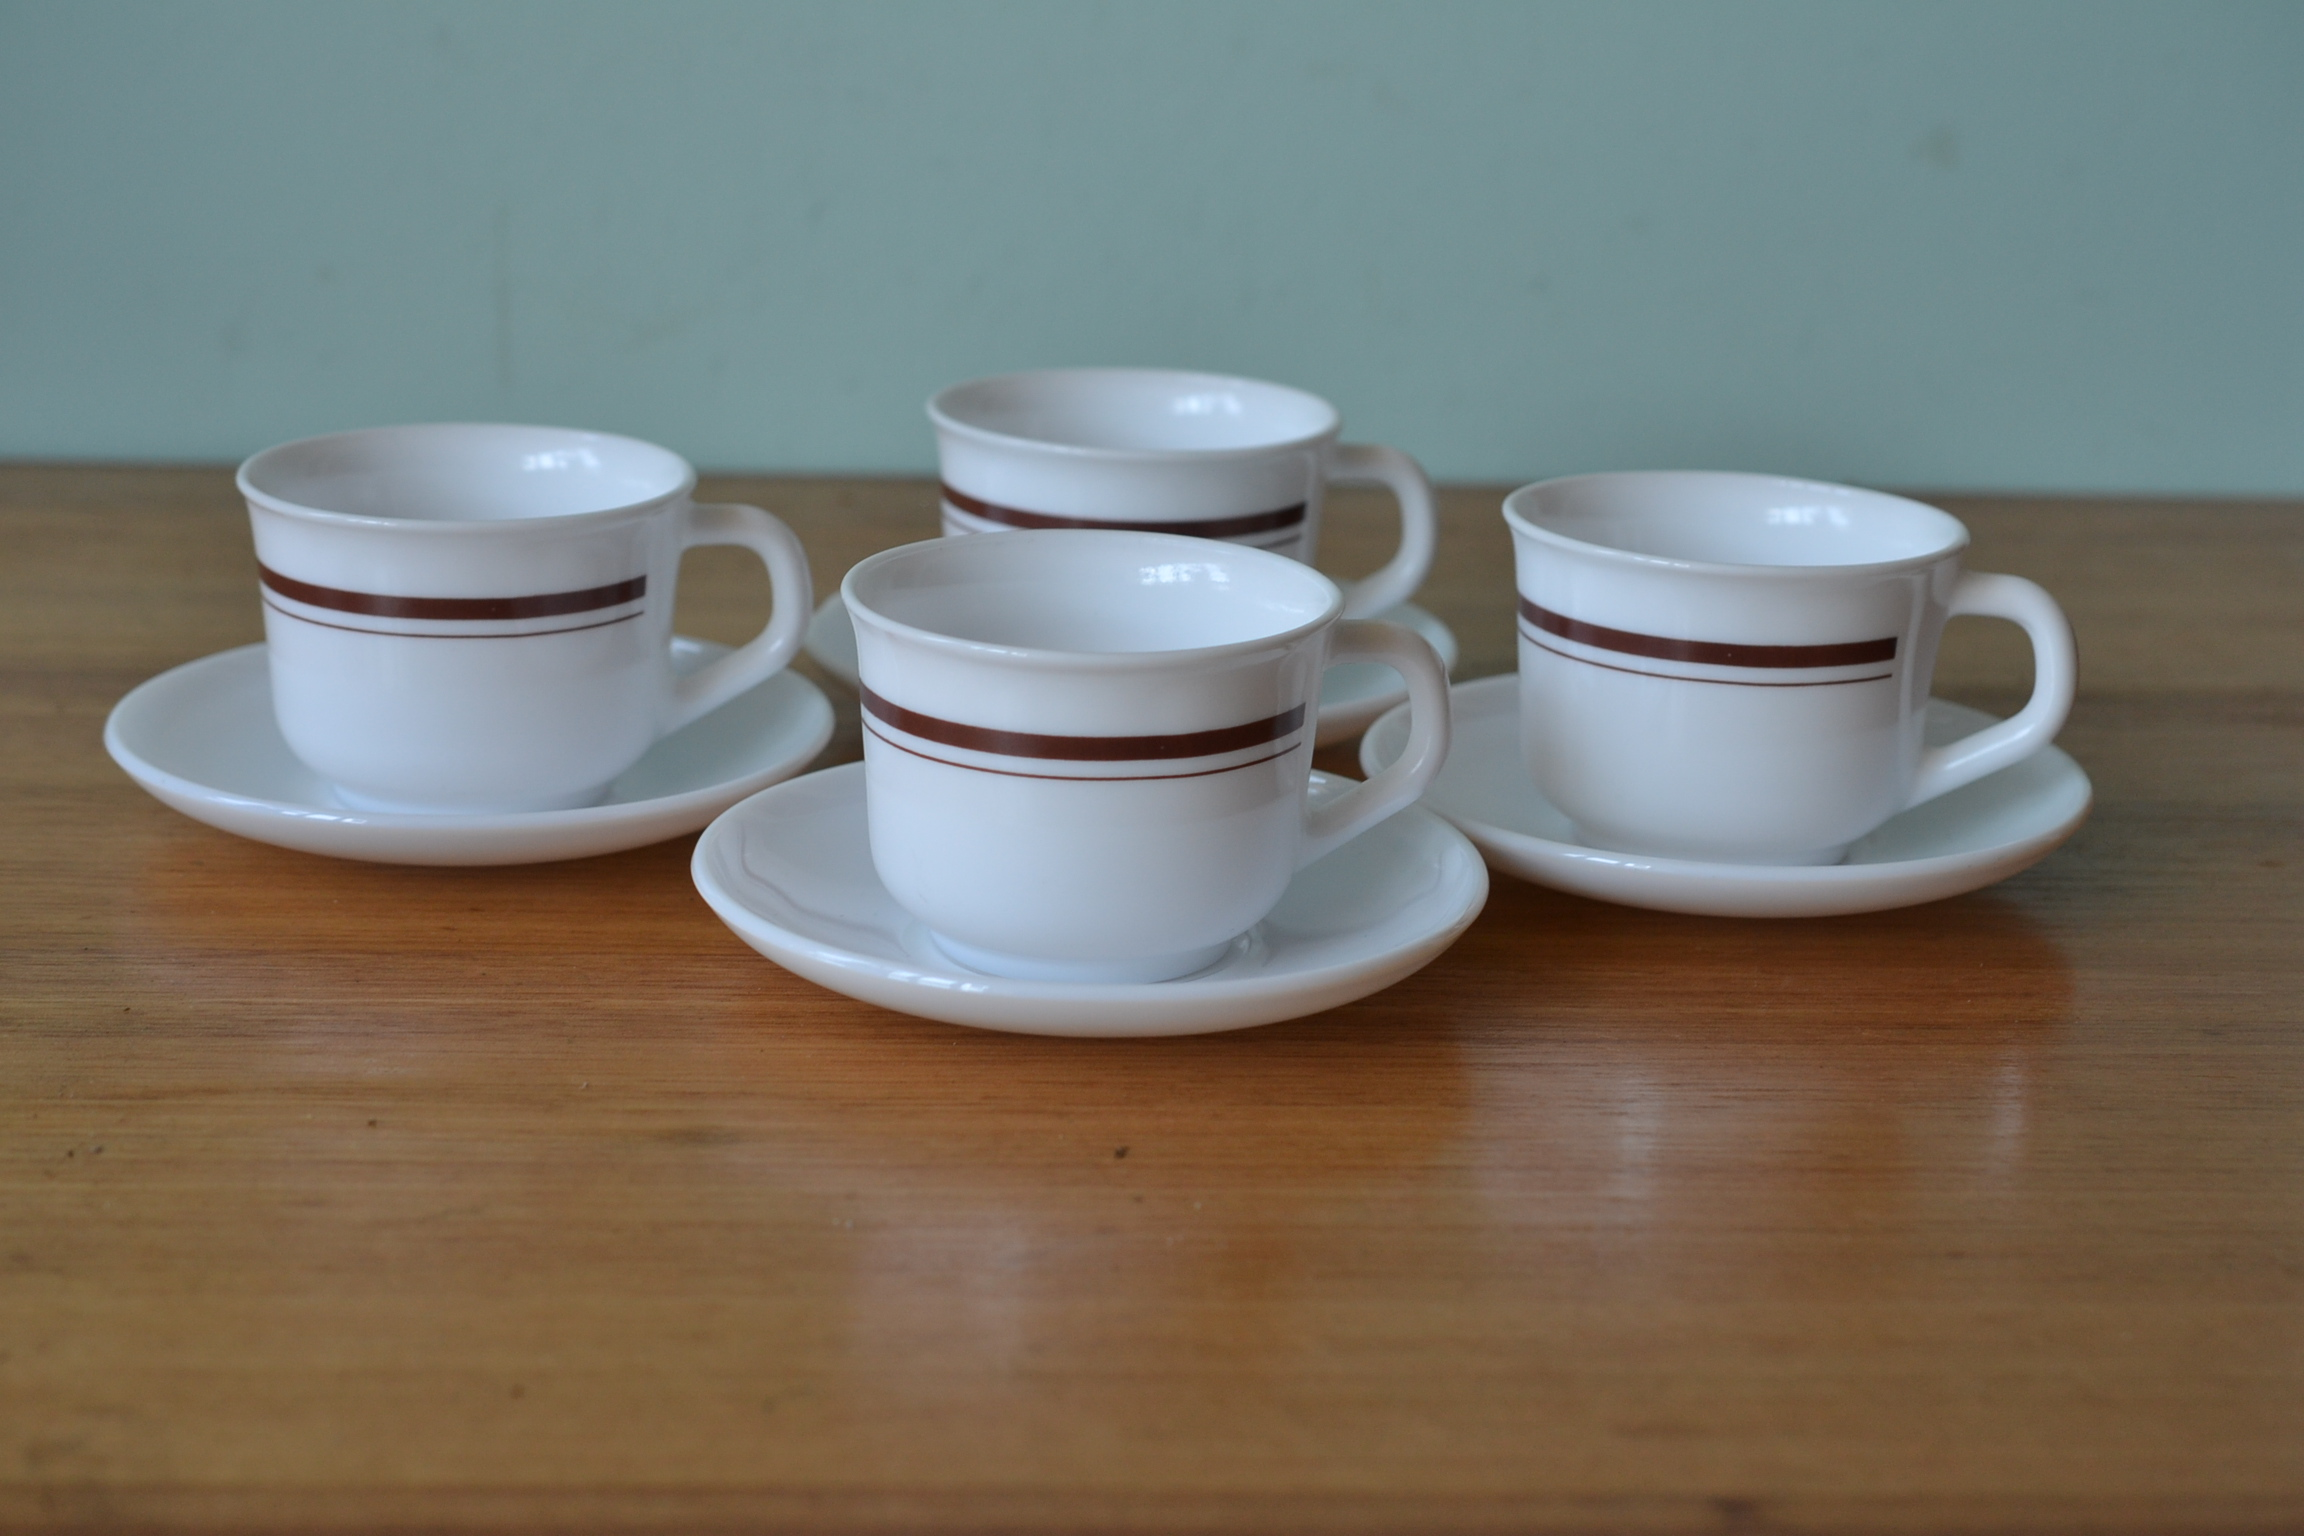 Vintage acropal set teacups coffee cups saucers made in france funky flamingo - Funky espresso cups ...